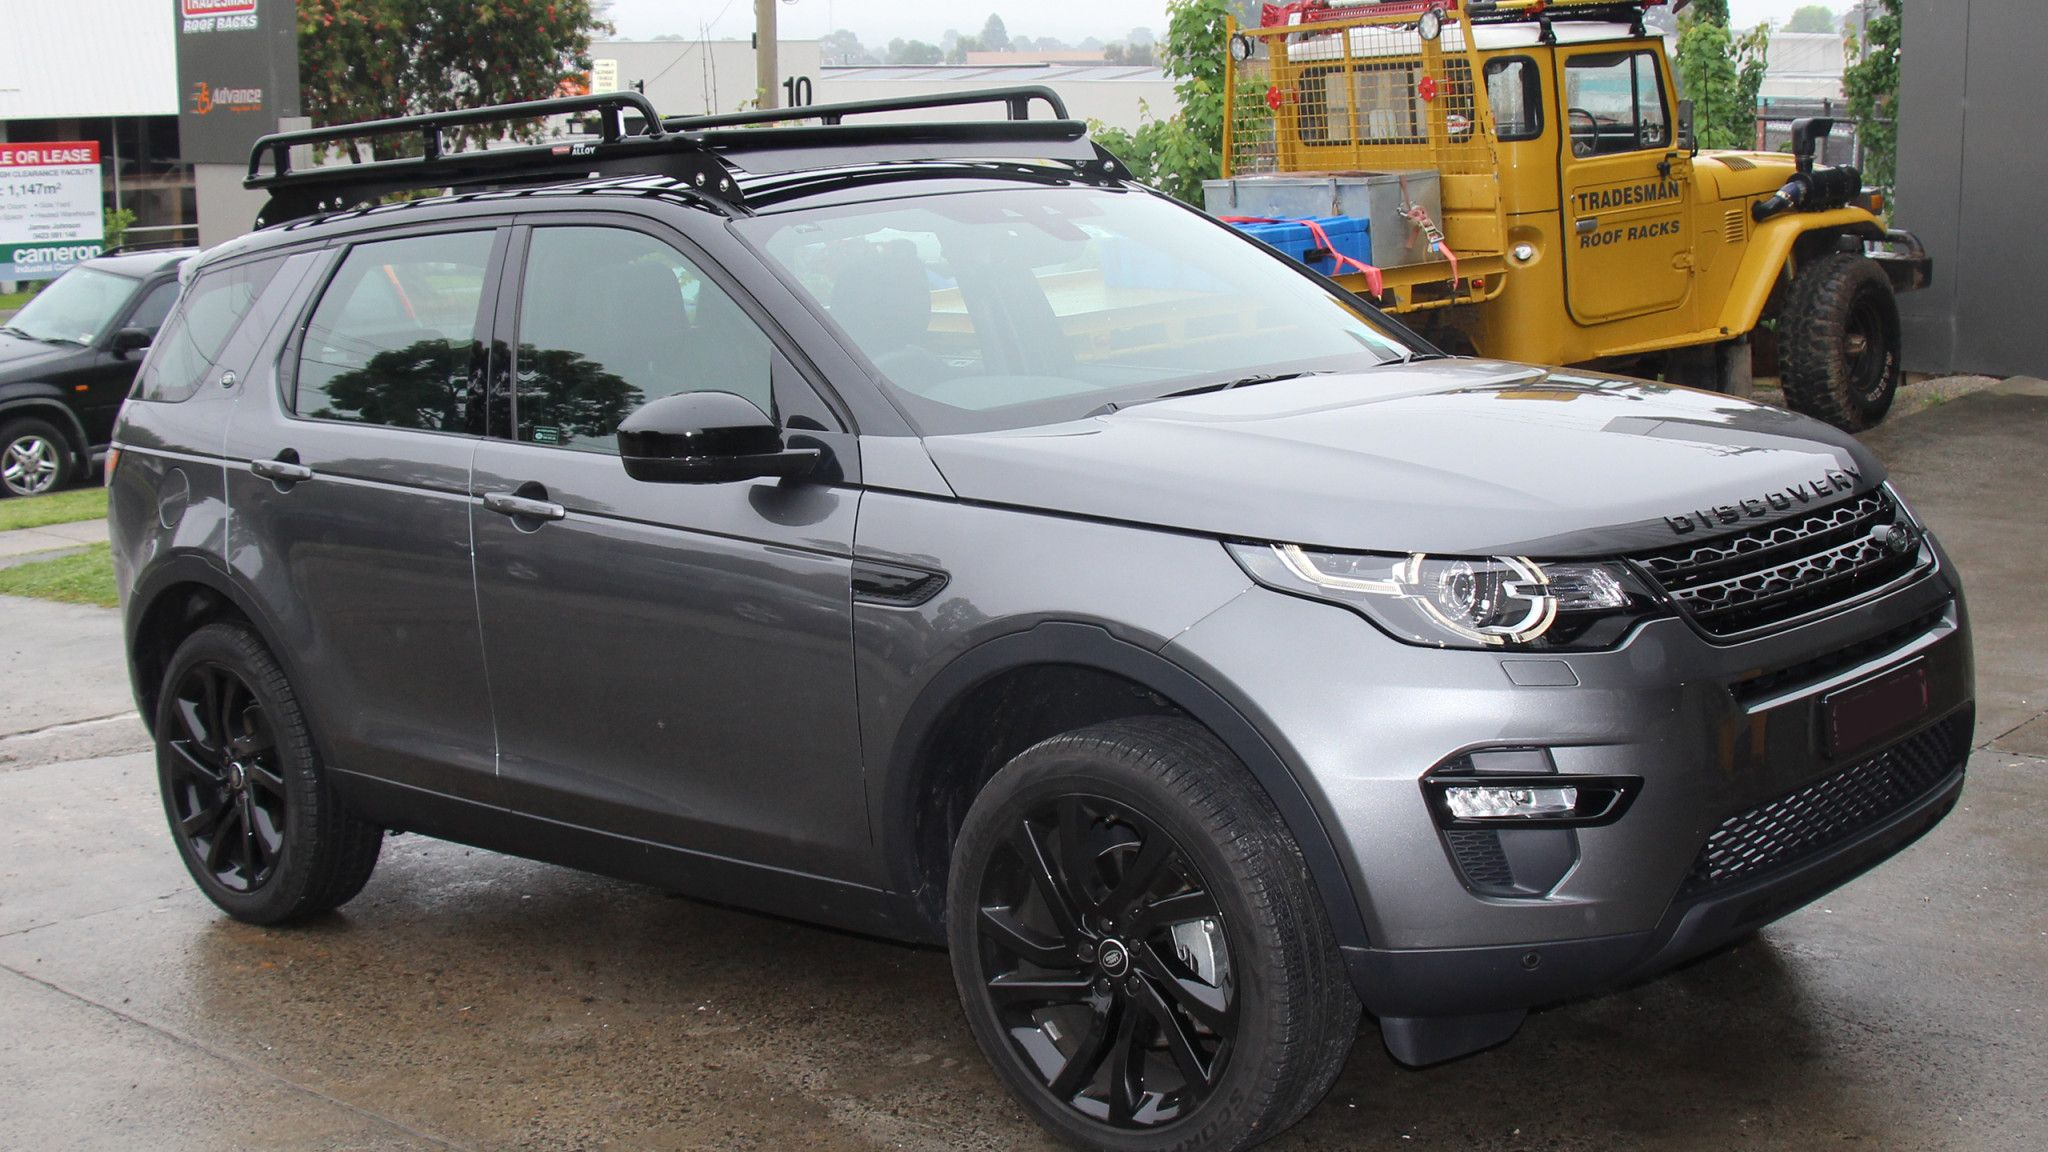 Land Rover Discovery Sport roof racks | Cars and bikes ...